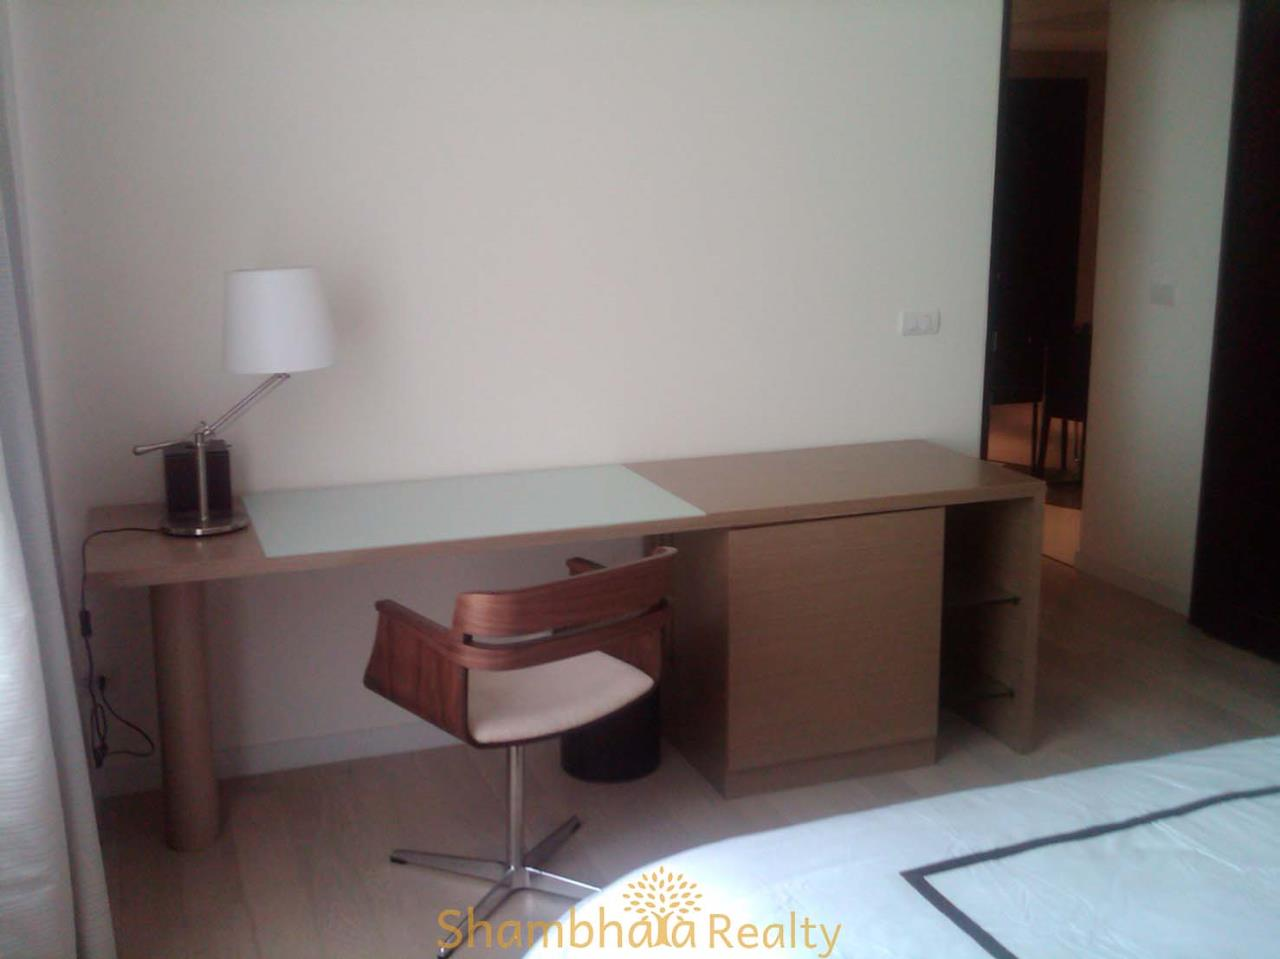 Shambhala Realty Agency's Eight Thonglor Residence Condominium for Rent in Thonglor 8 4